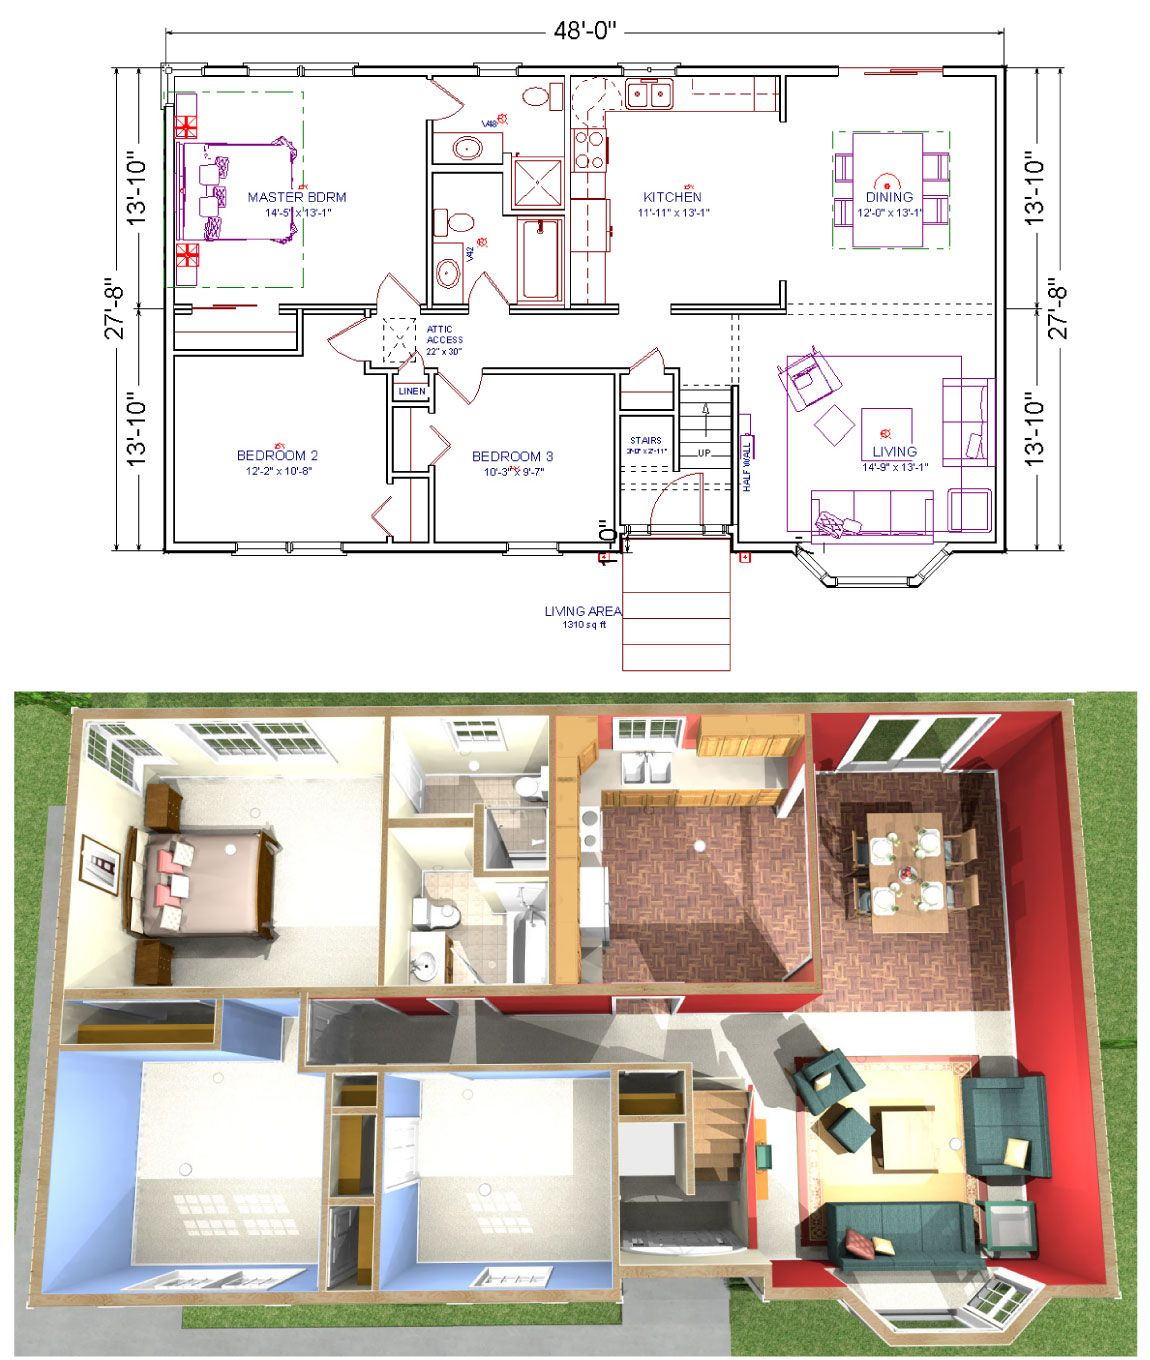 Raised Ranch House Plans Floor Plans Redone House Floor Plans Remodeling Floor Plans Basement House Plans